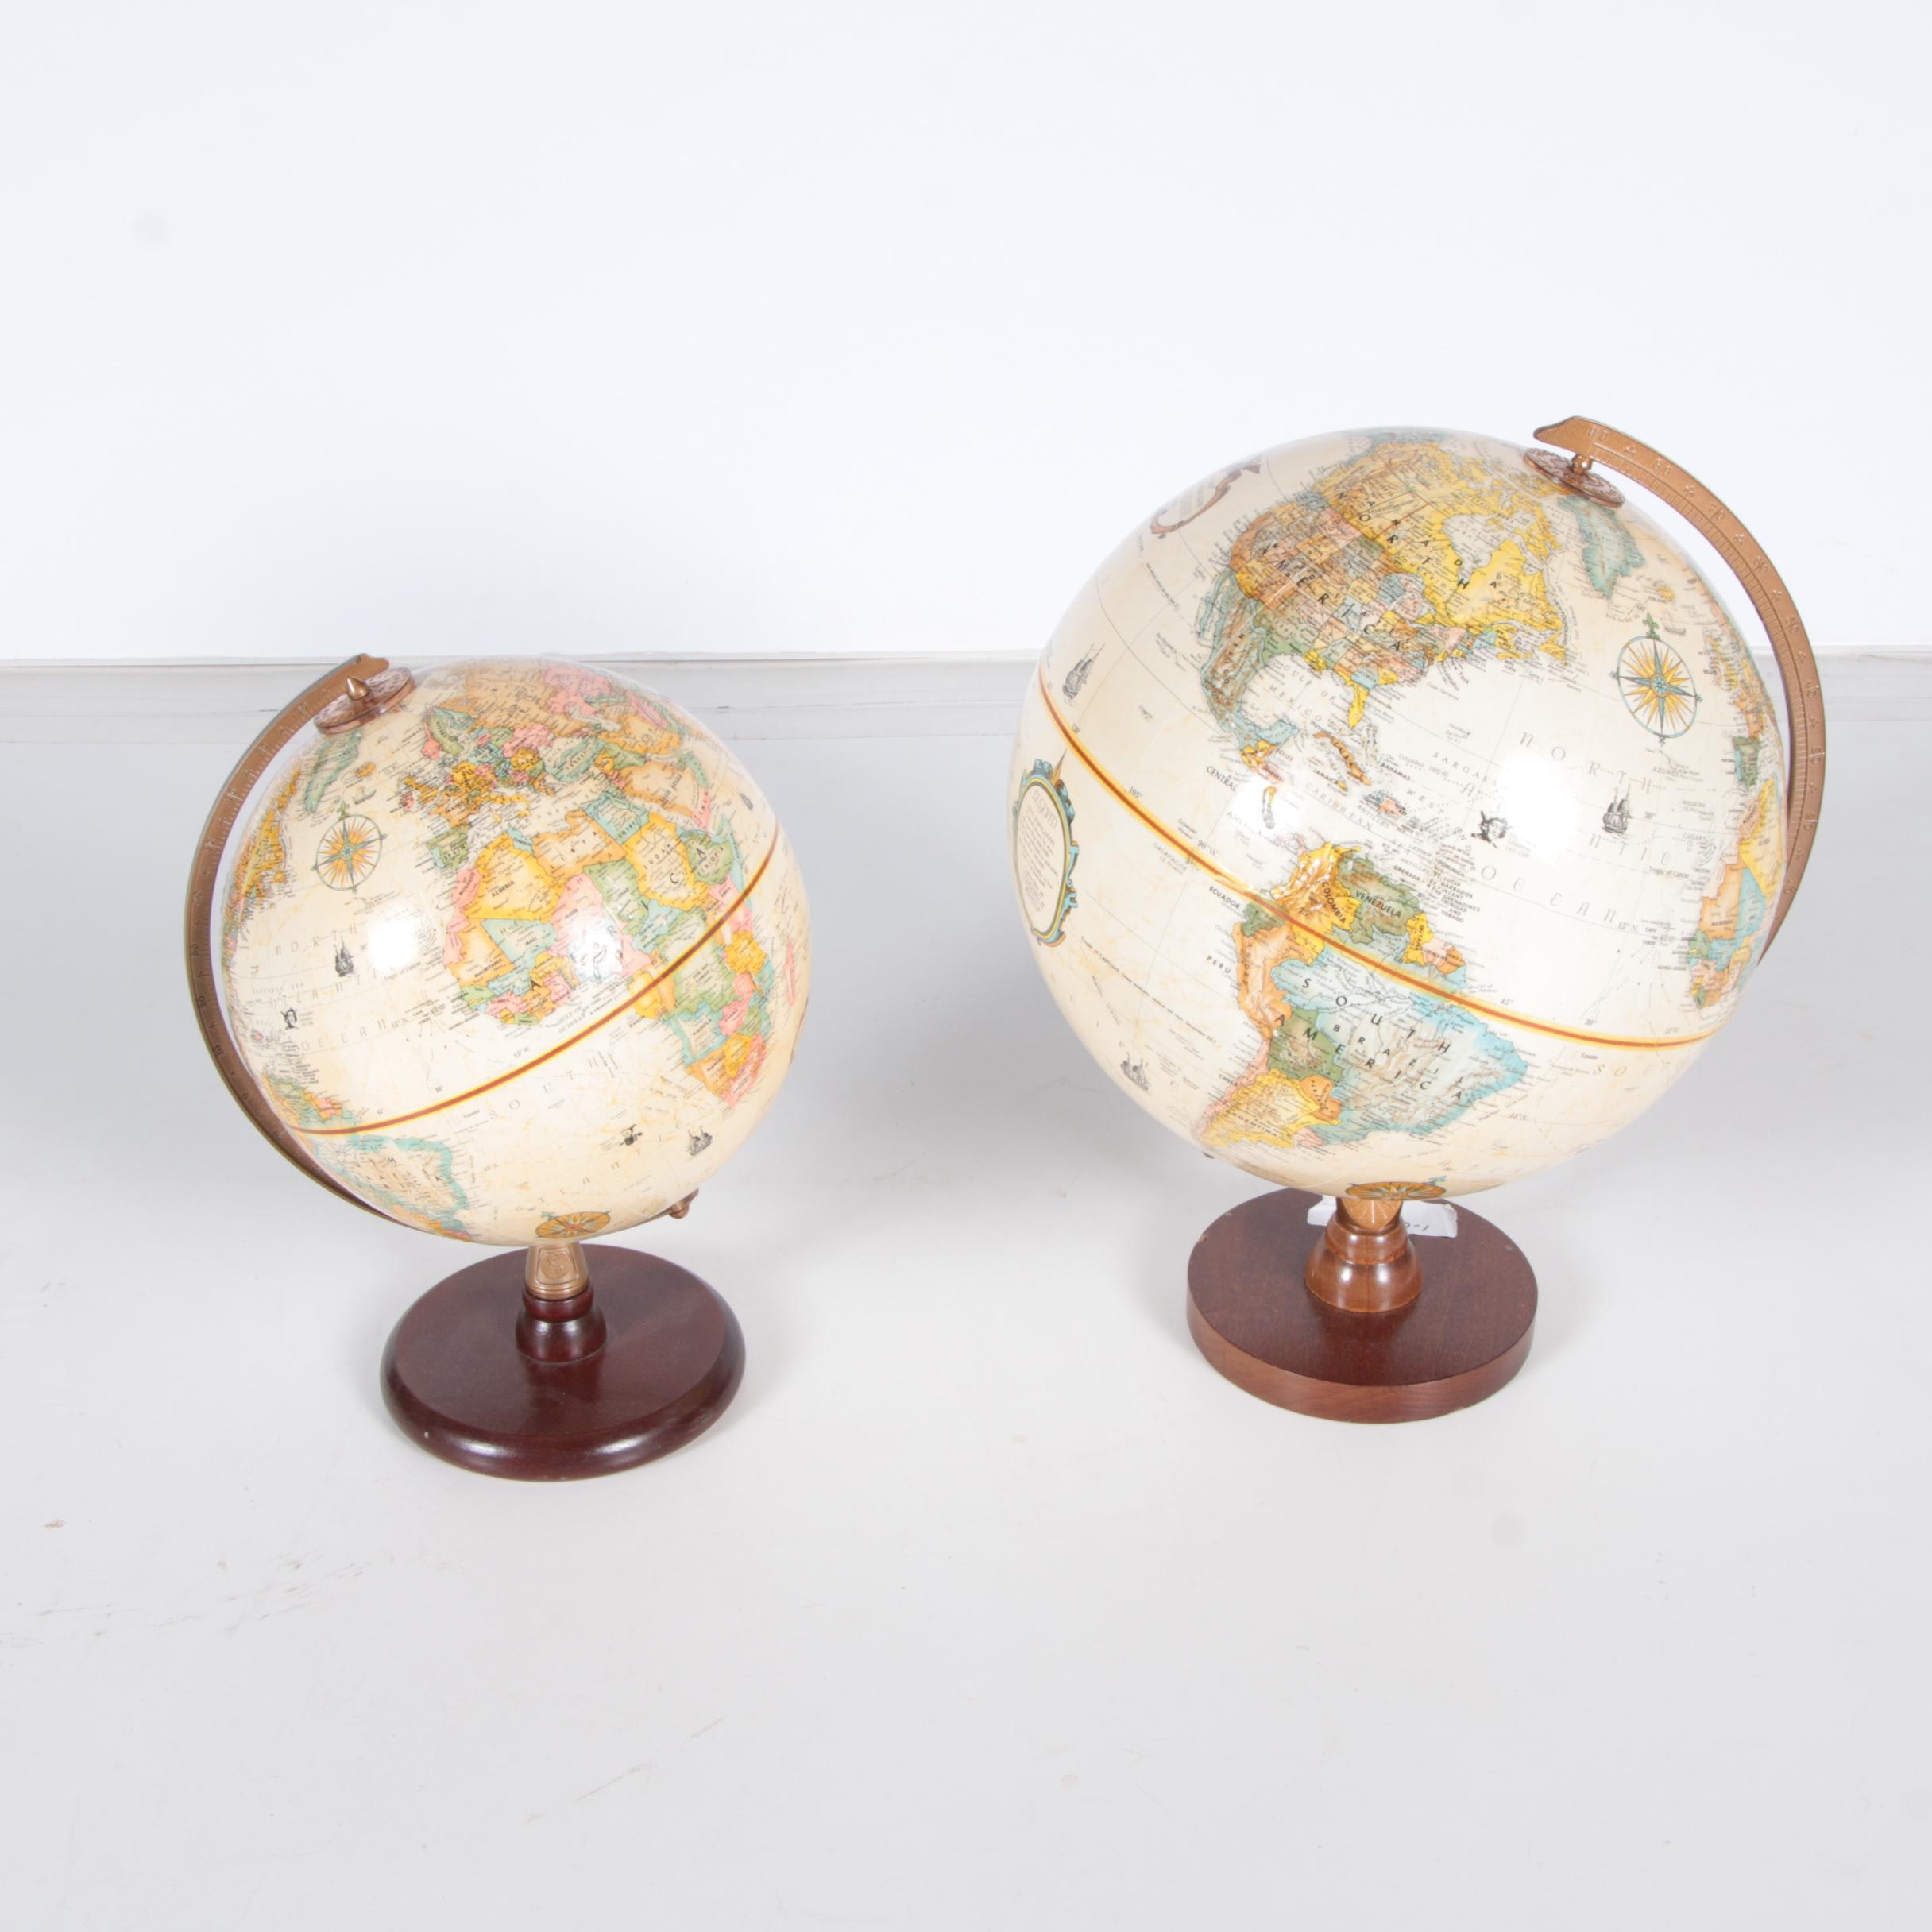 Pair of Desktop Globes with Wooden Bases